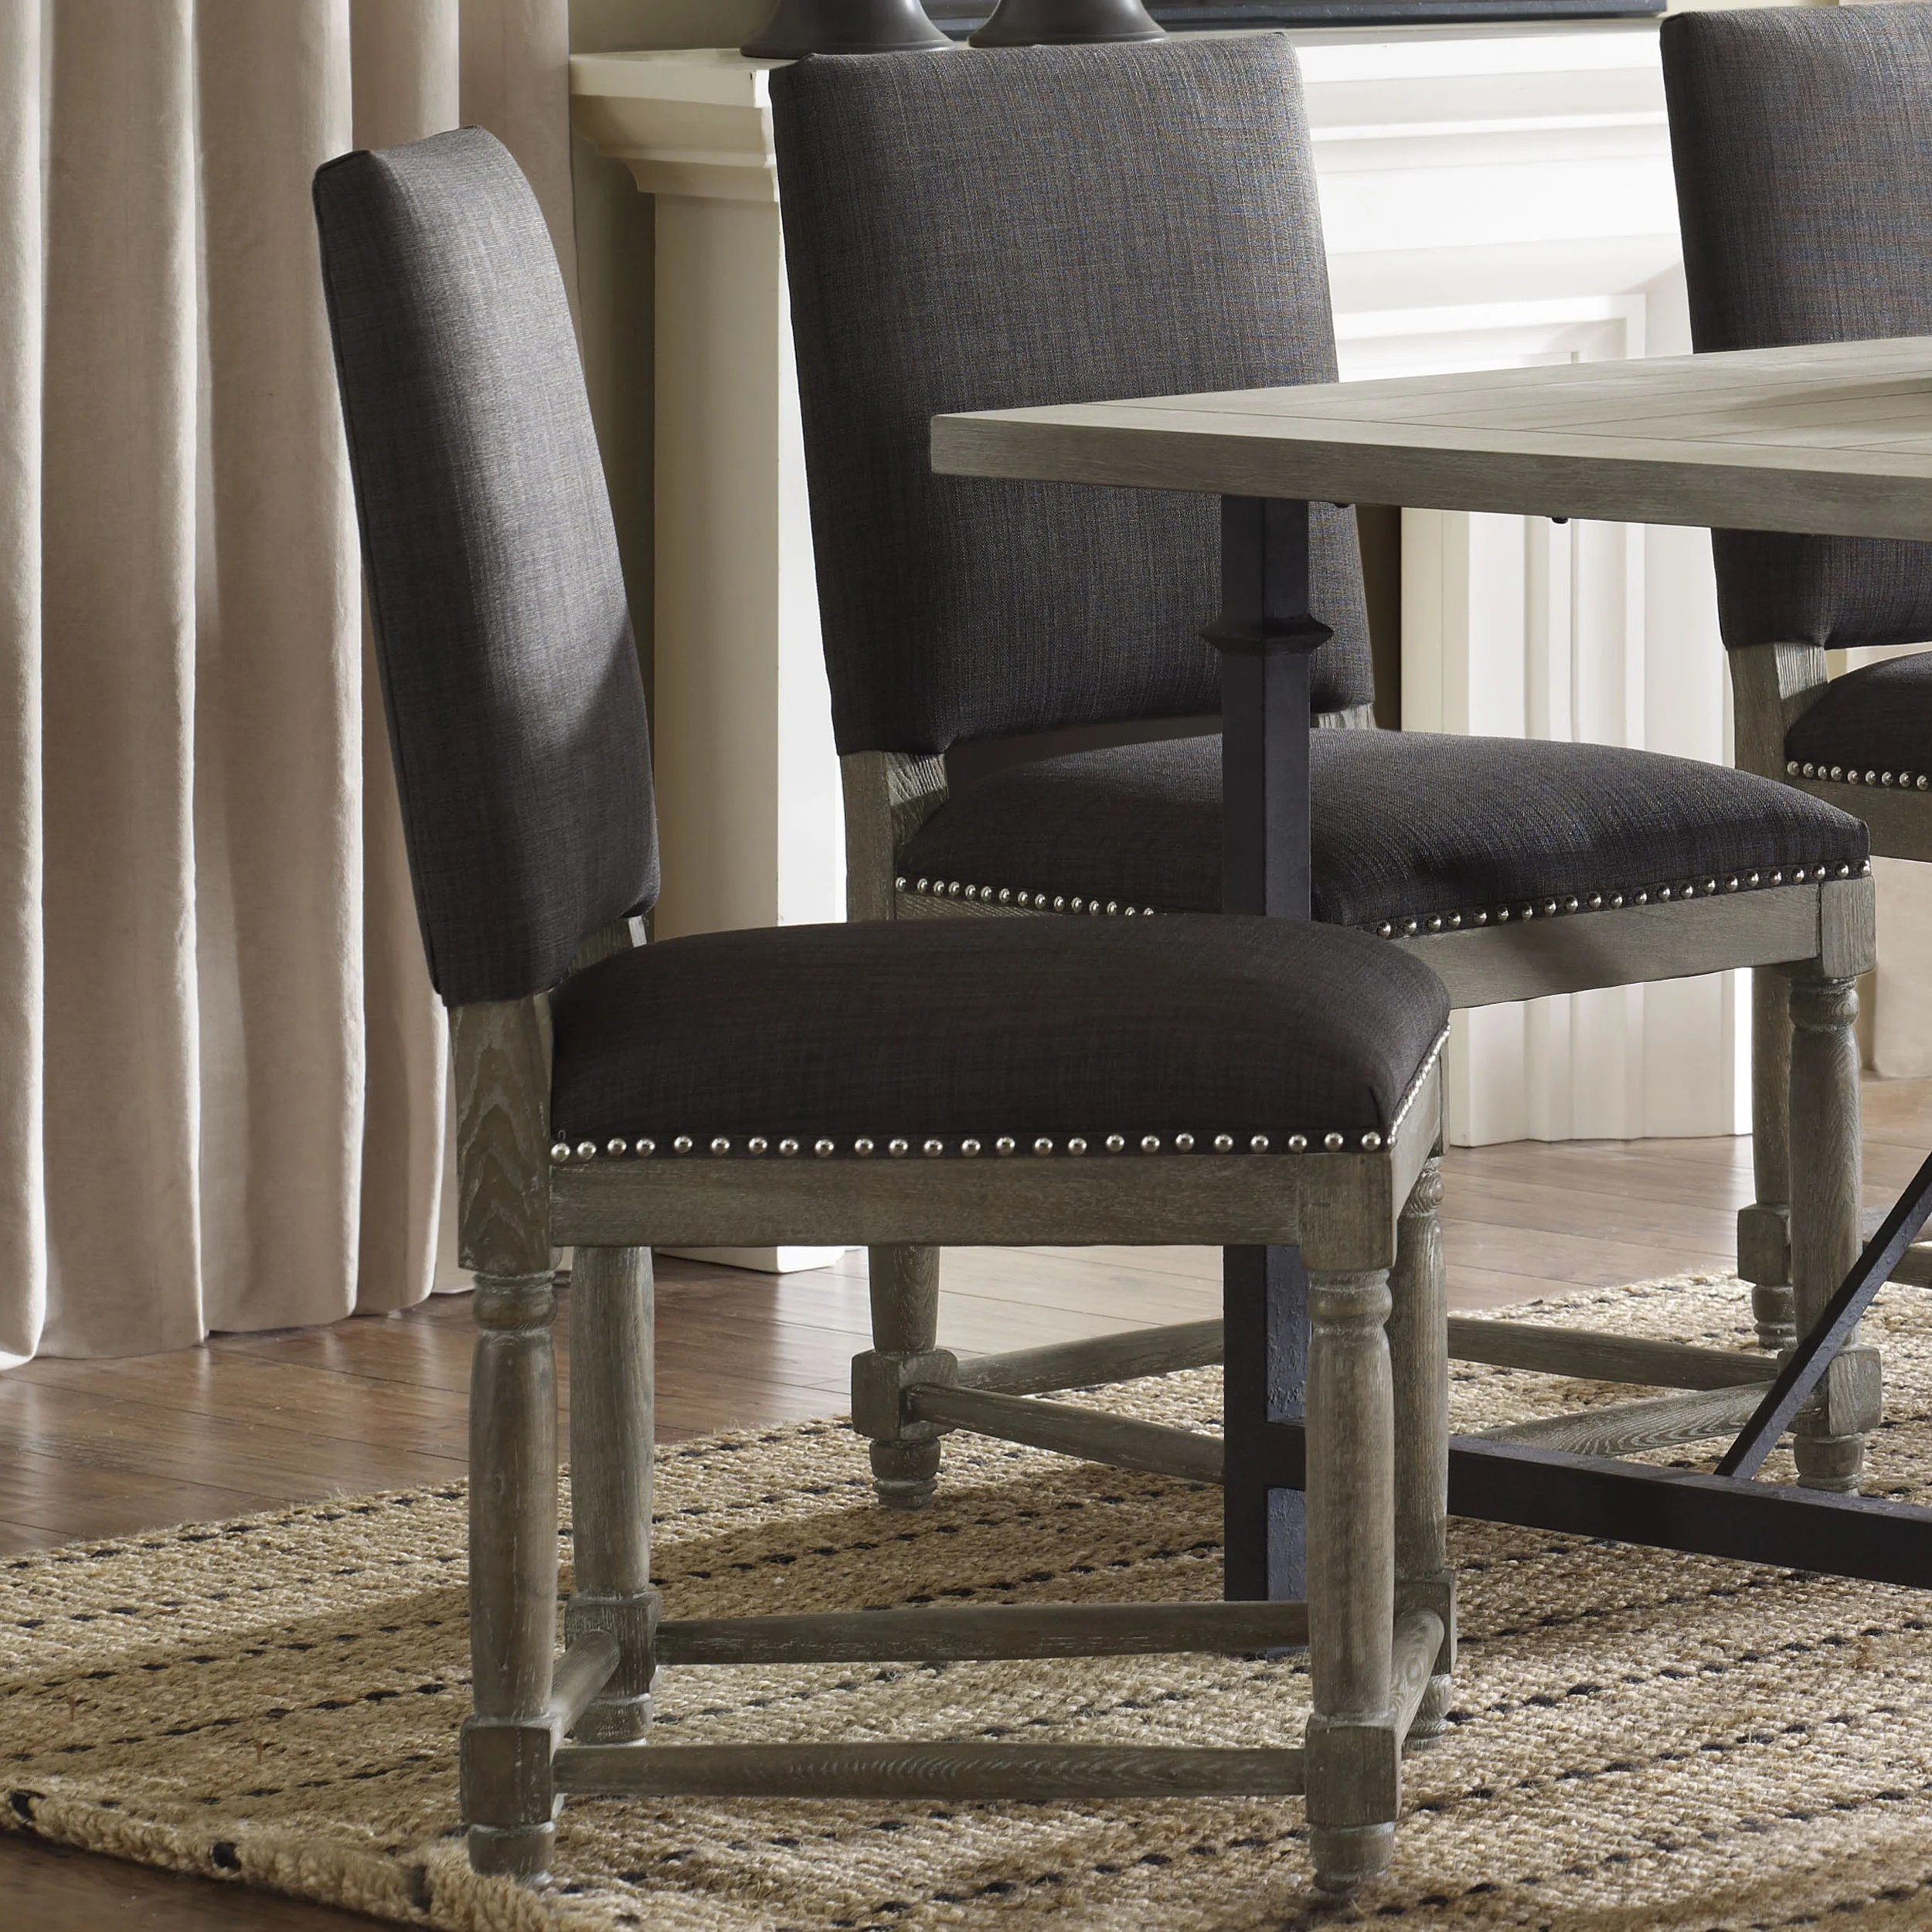 Grey Wood Dining Chairs Classic Design Dinning Chairs Elegant Gray Rustic